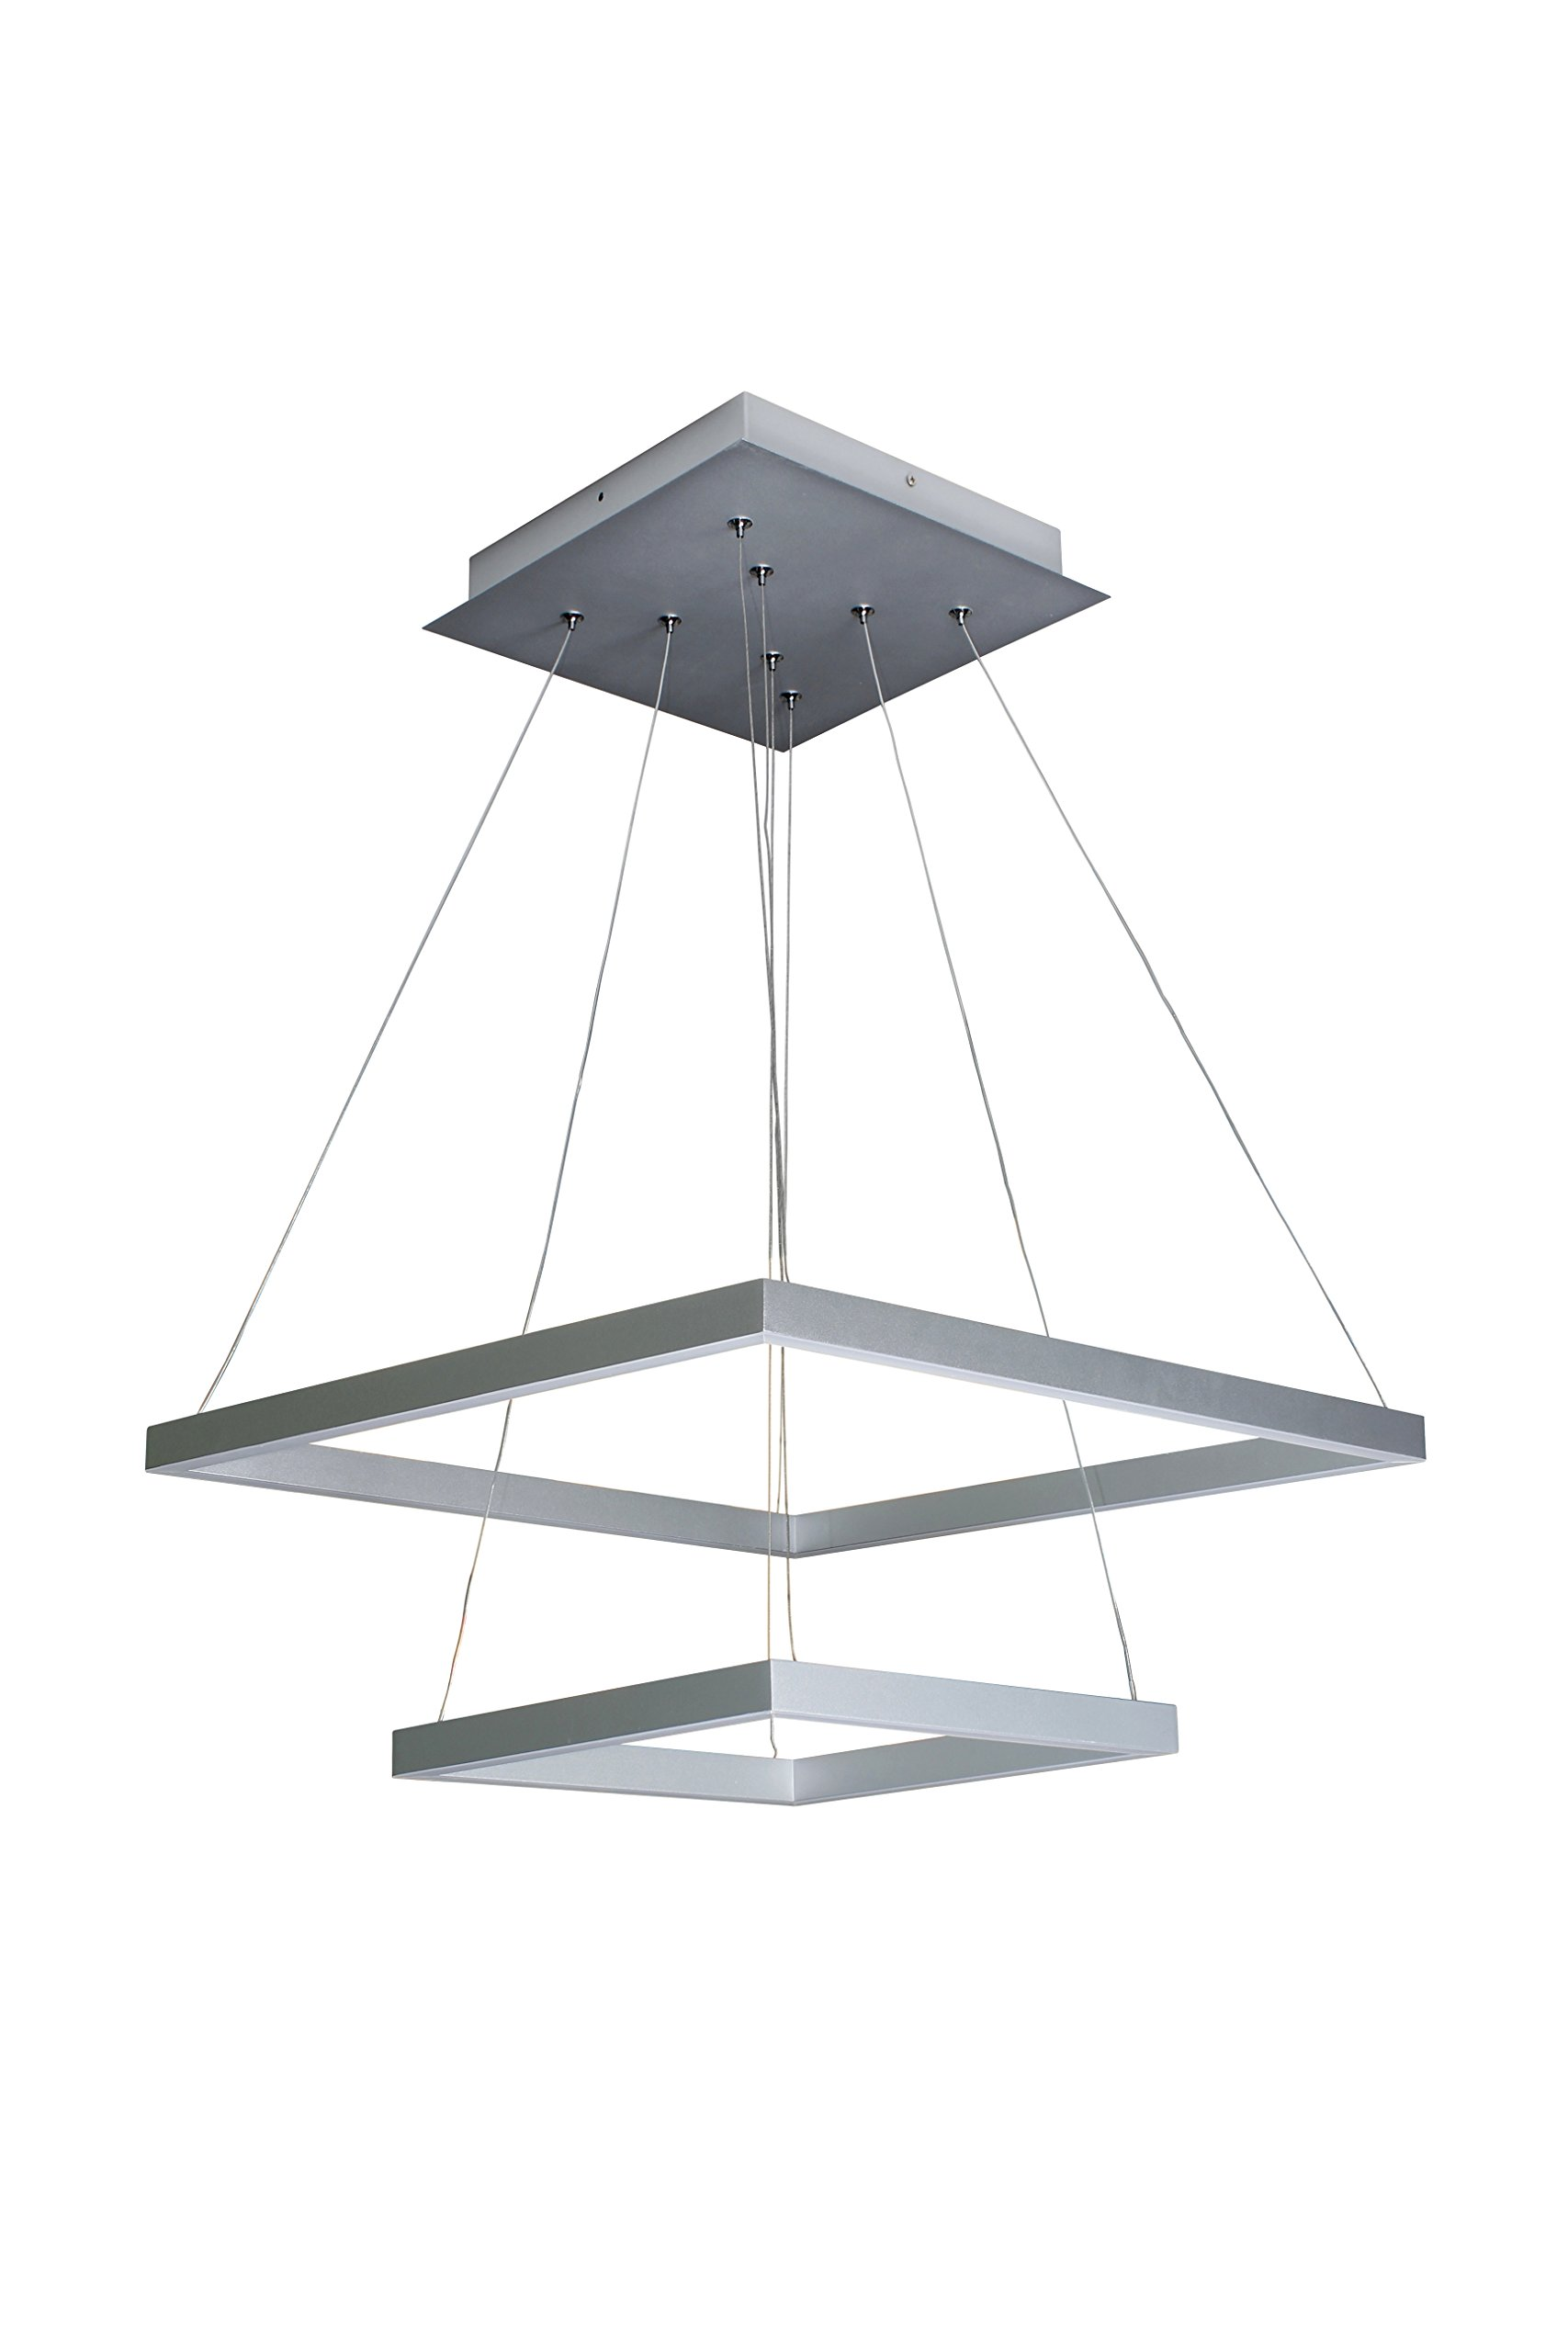 "VONN VMC31720AL Modern Two-Tier Square LED Chandelier Lighting with Adjustable Hanging Light, 19.69"" x 19.69"" x 11.81"", Silver"